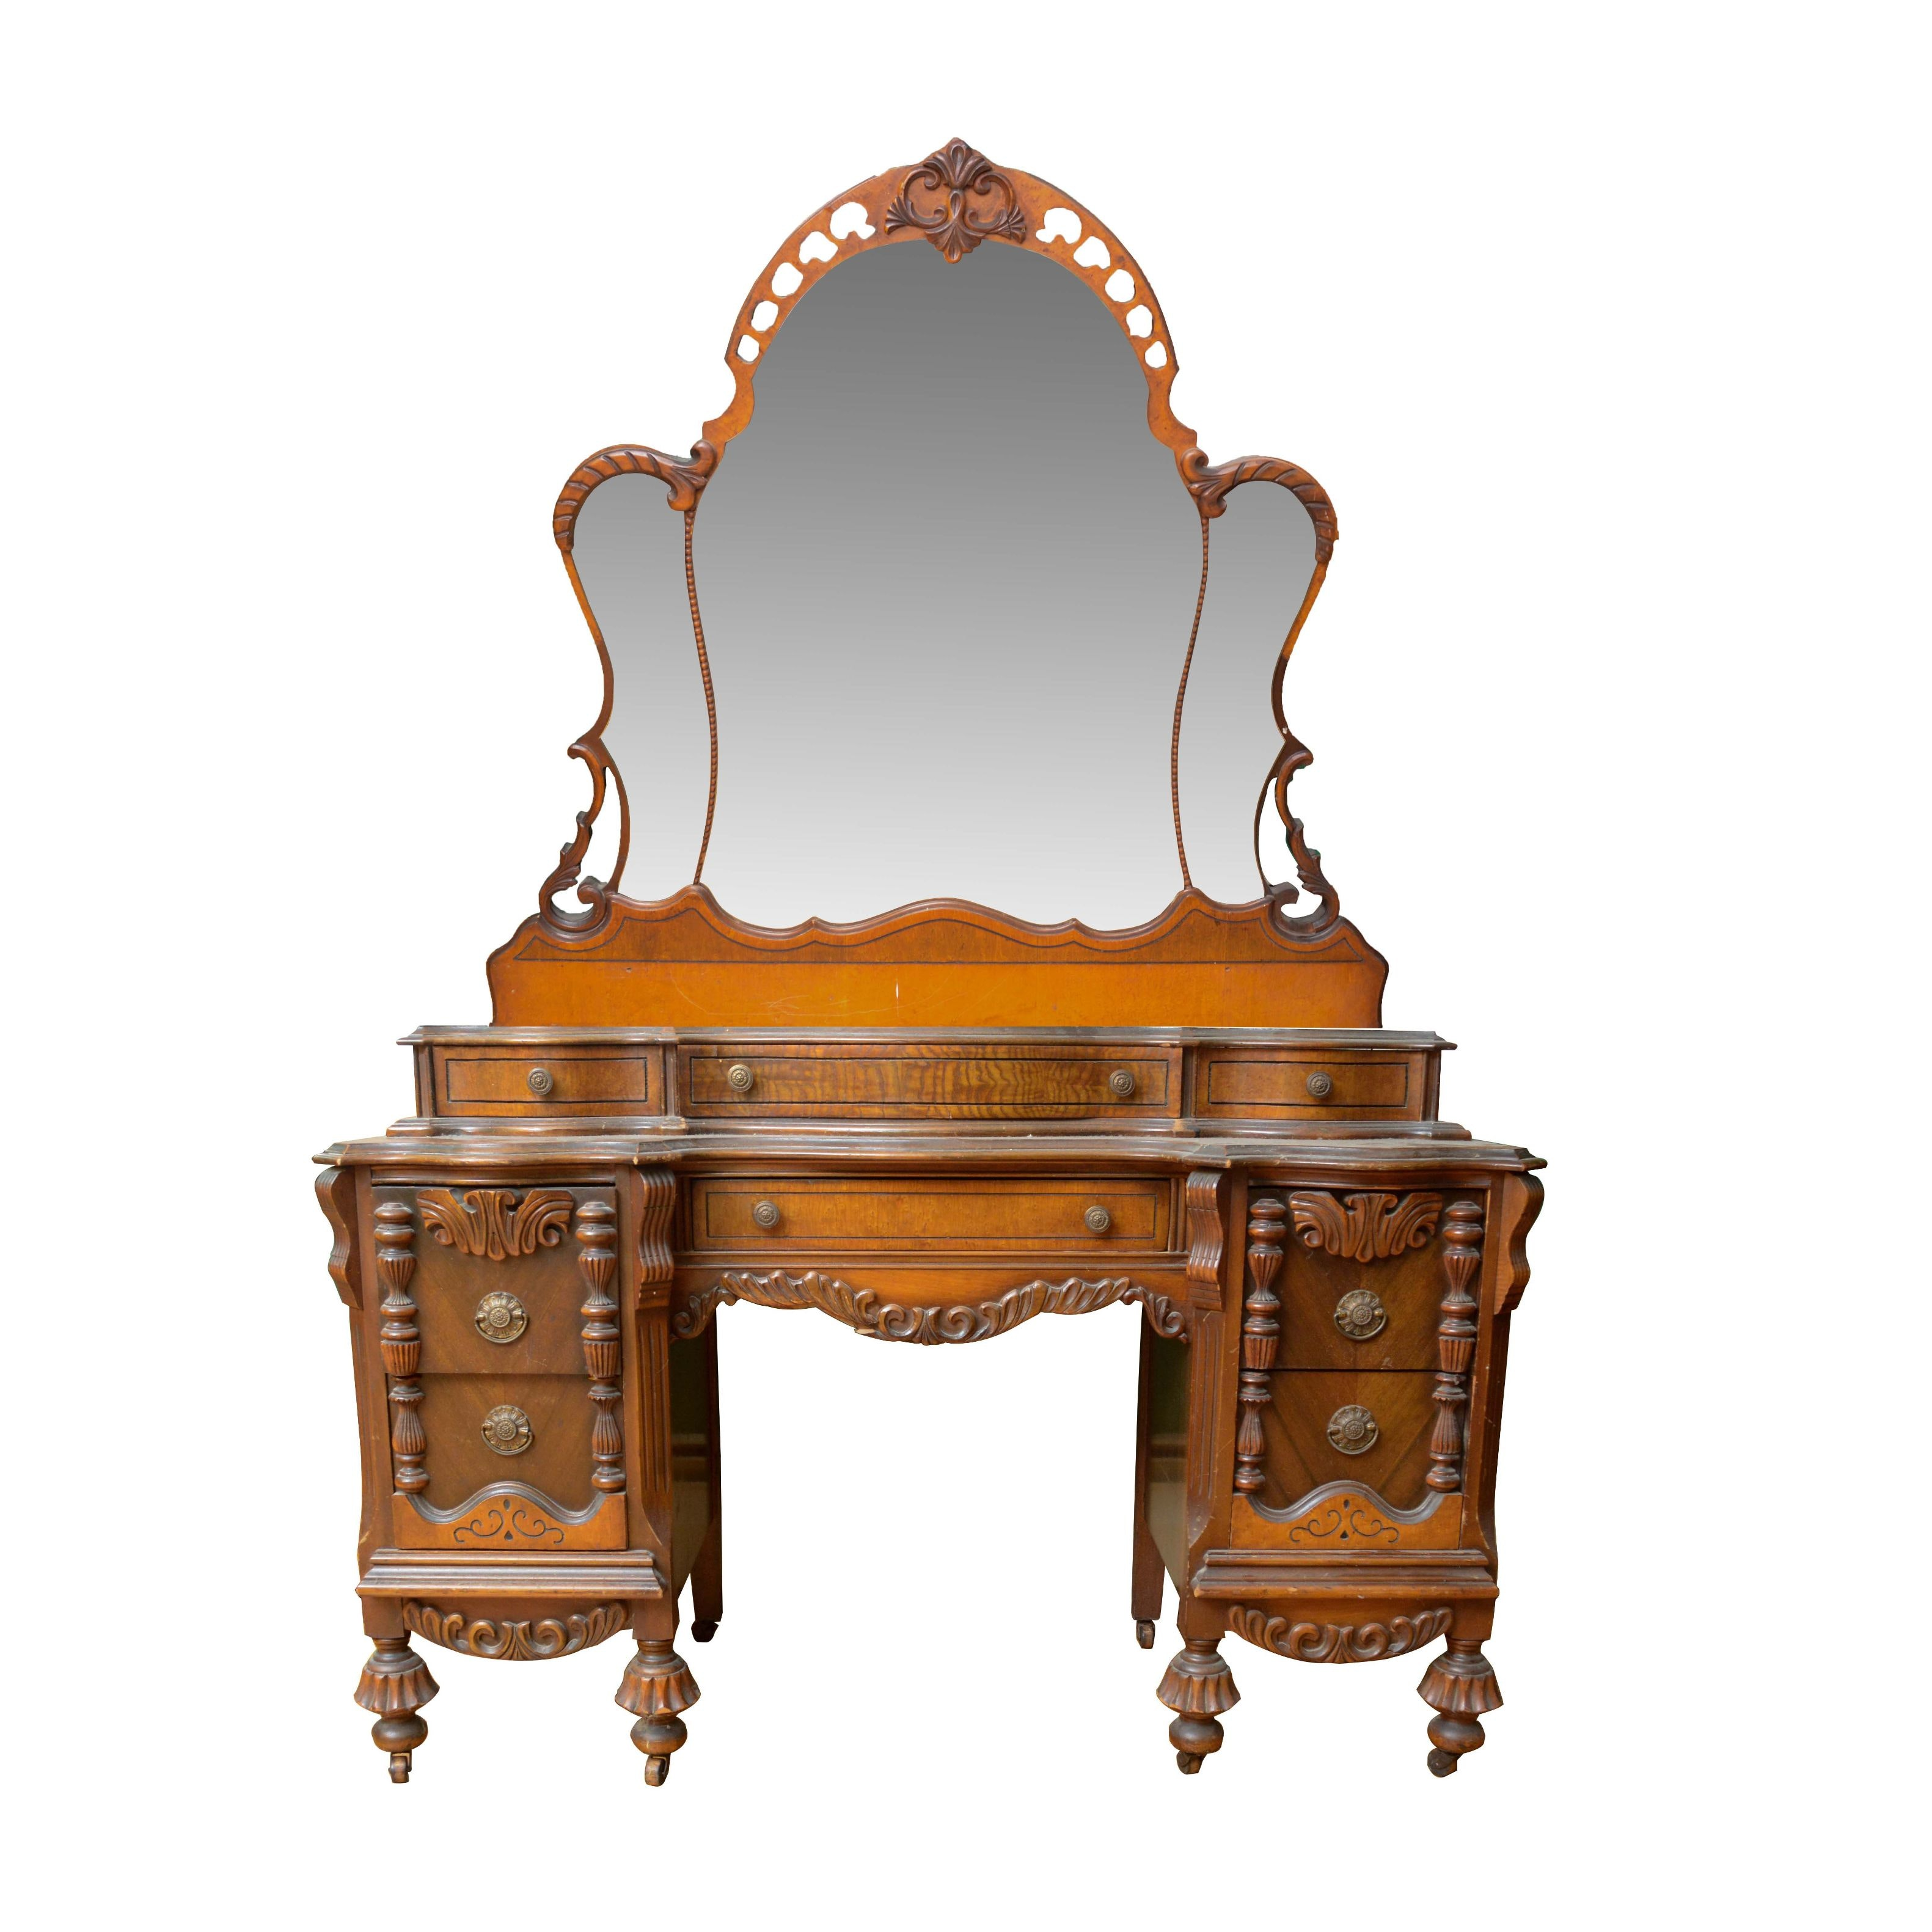 Jacobean Revival Style Vanity with Mirror, Early 20th Century